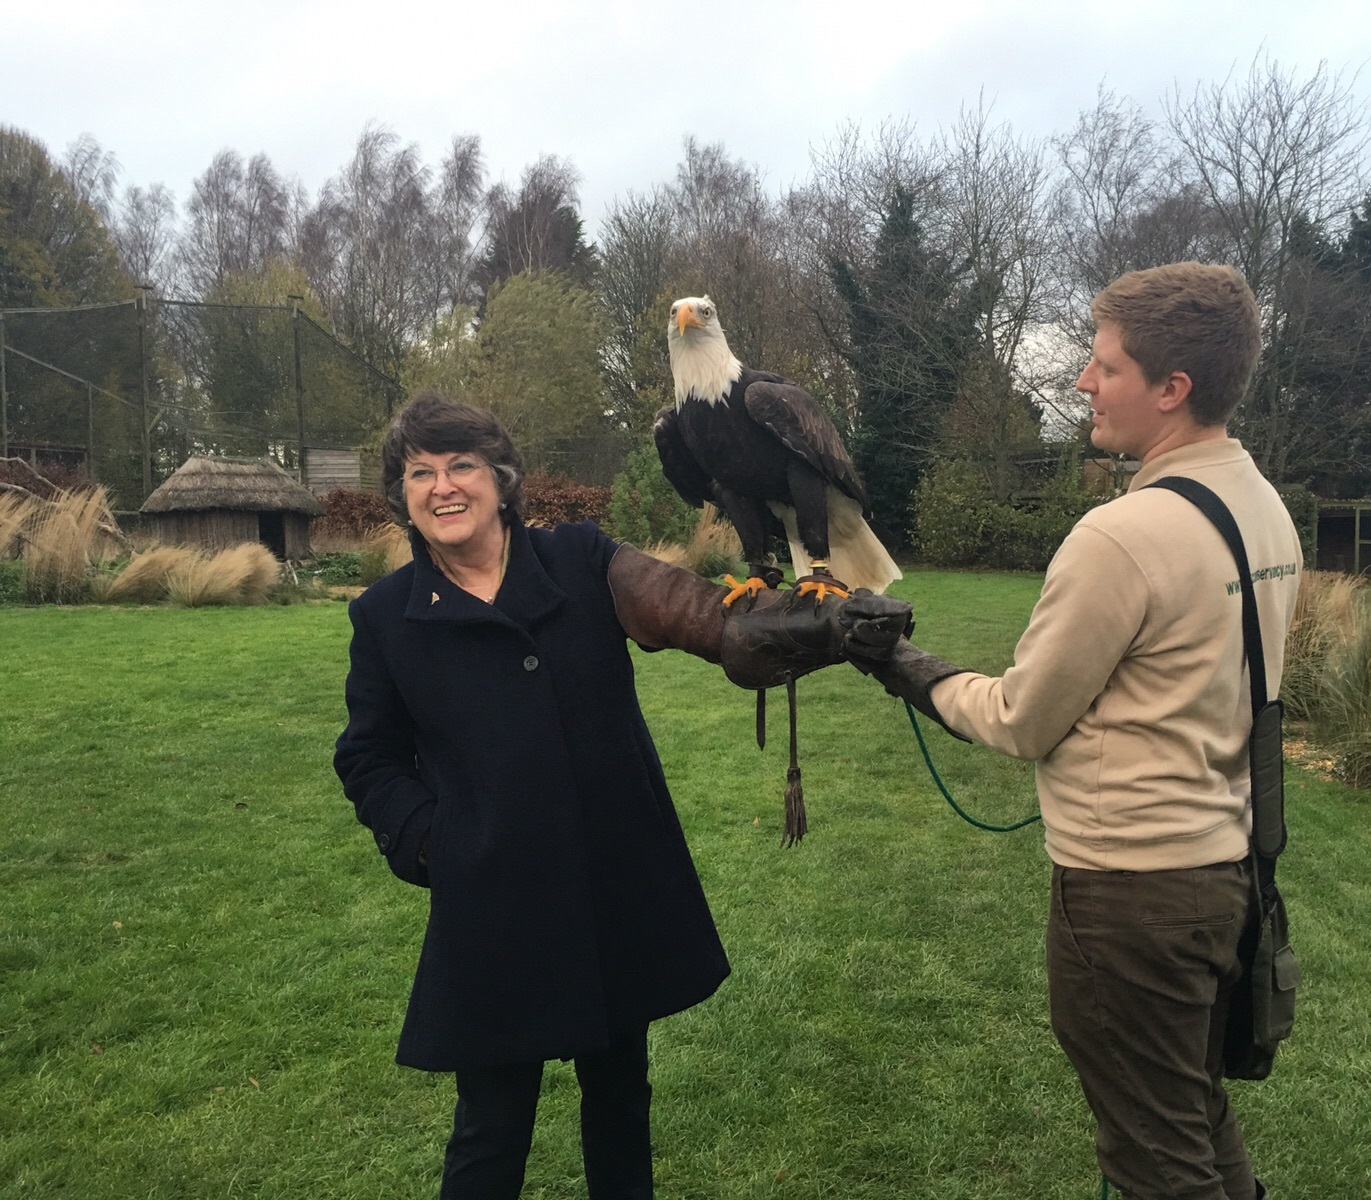 key_Catherine_at_Hawk_Conservancy.jpg